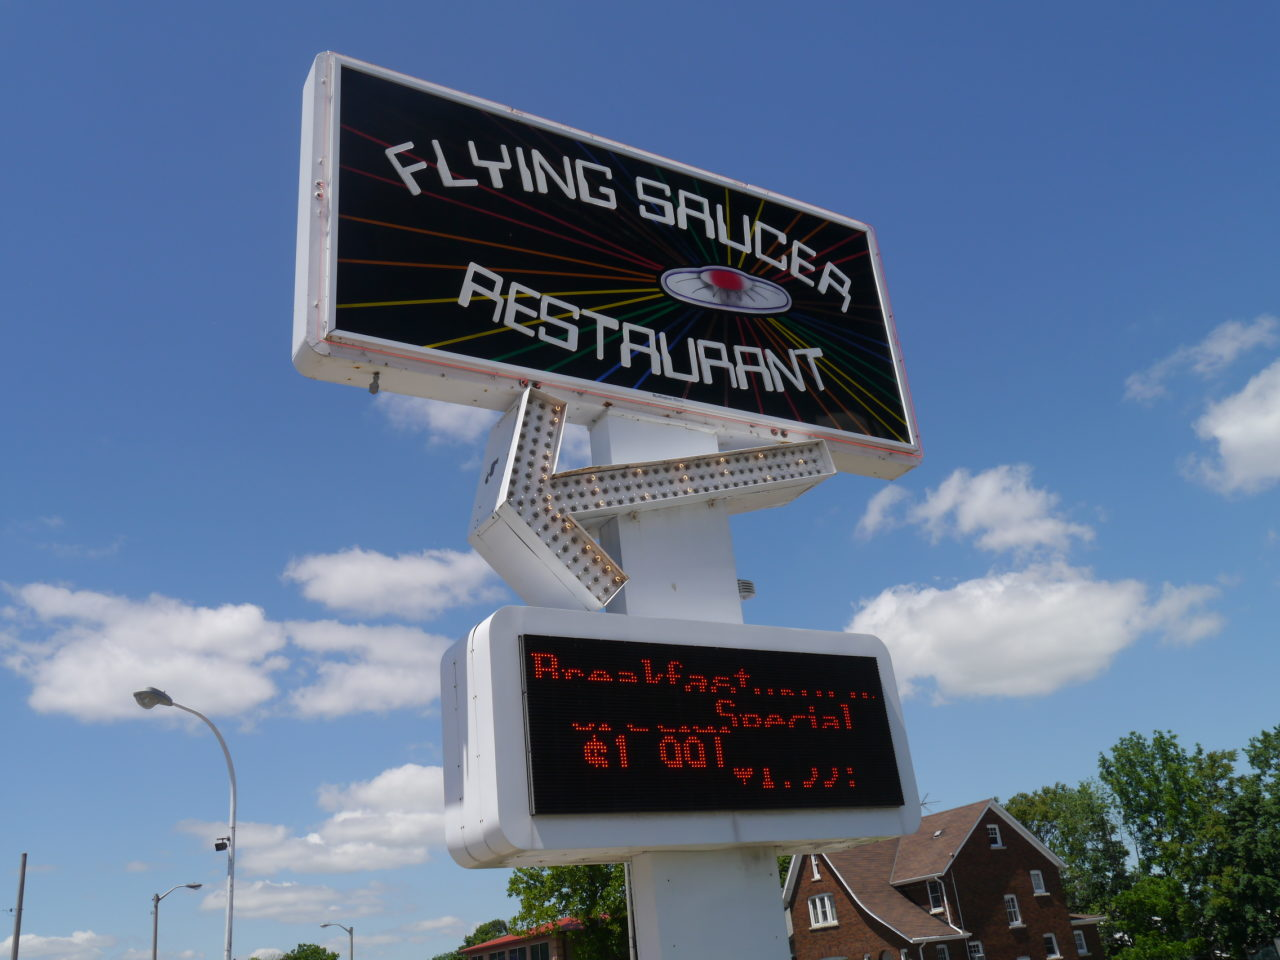 Restaurants in Niagara Falls: Flying Saucer